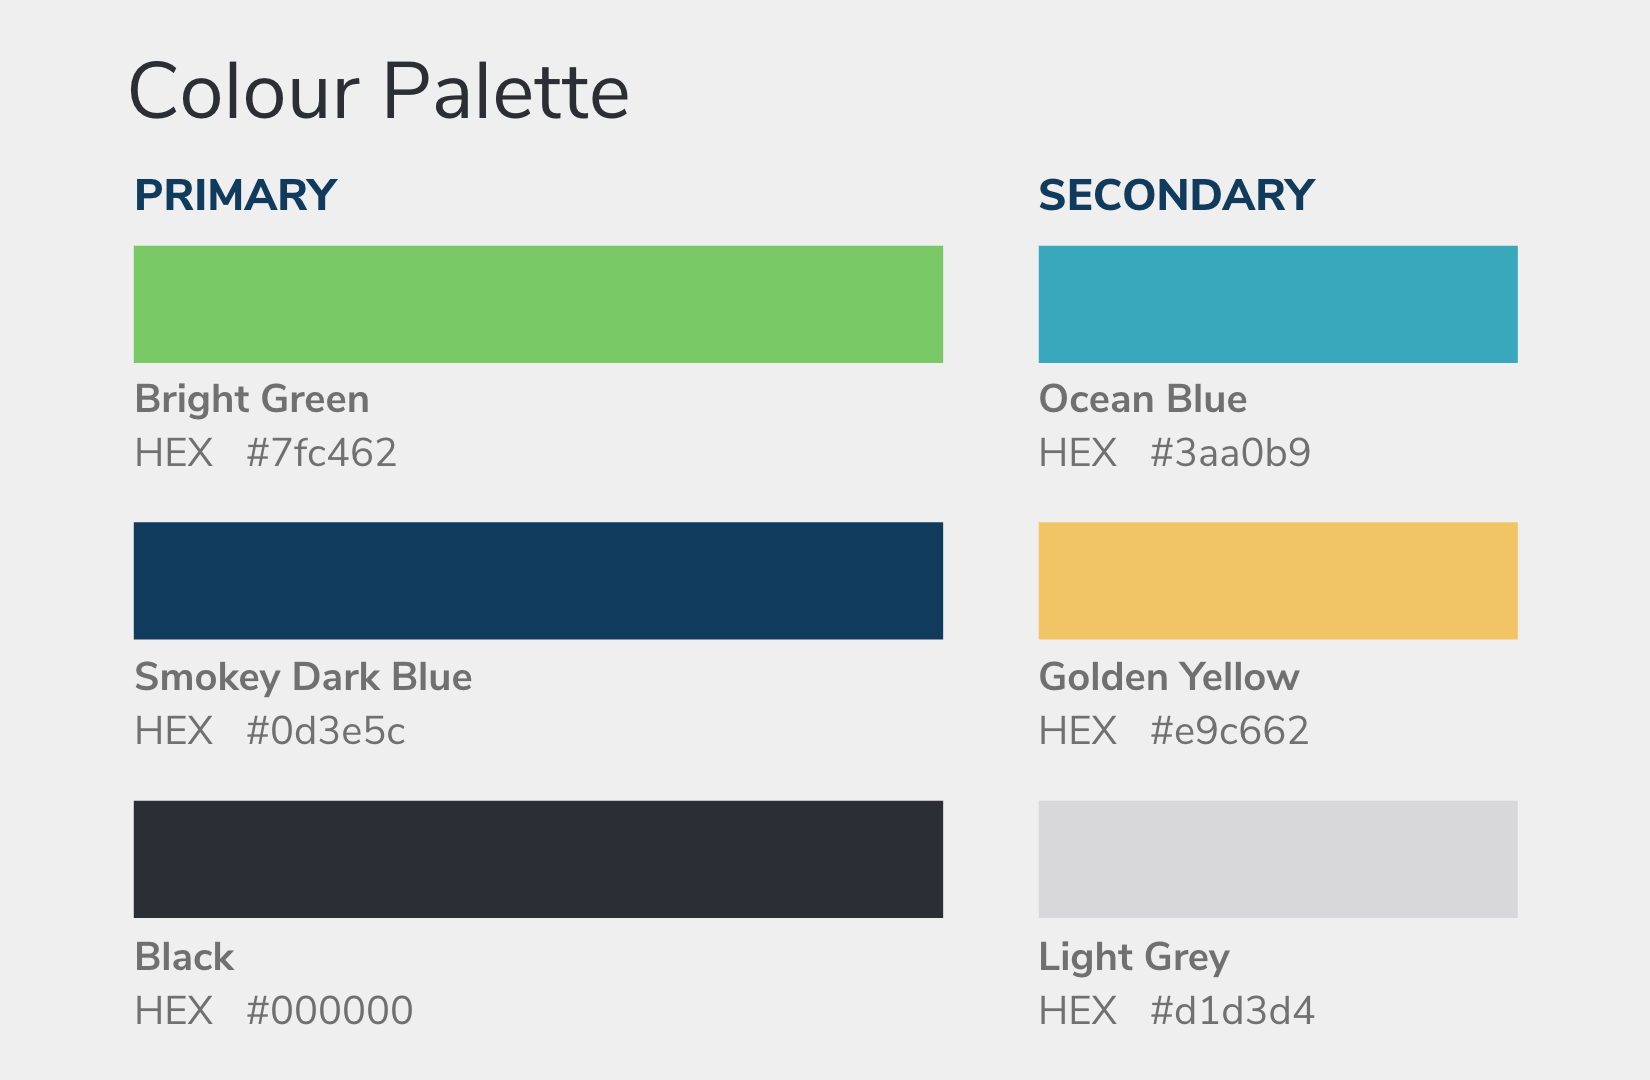 OneStep primary and secondary colour palette